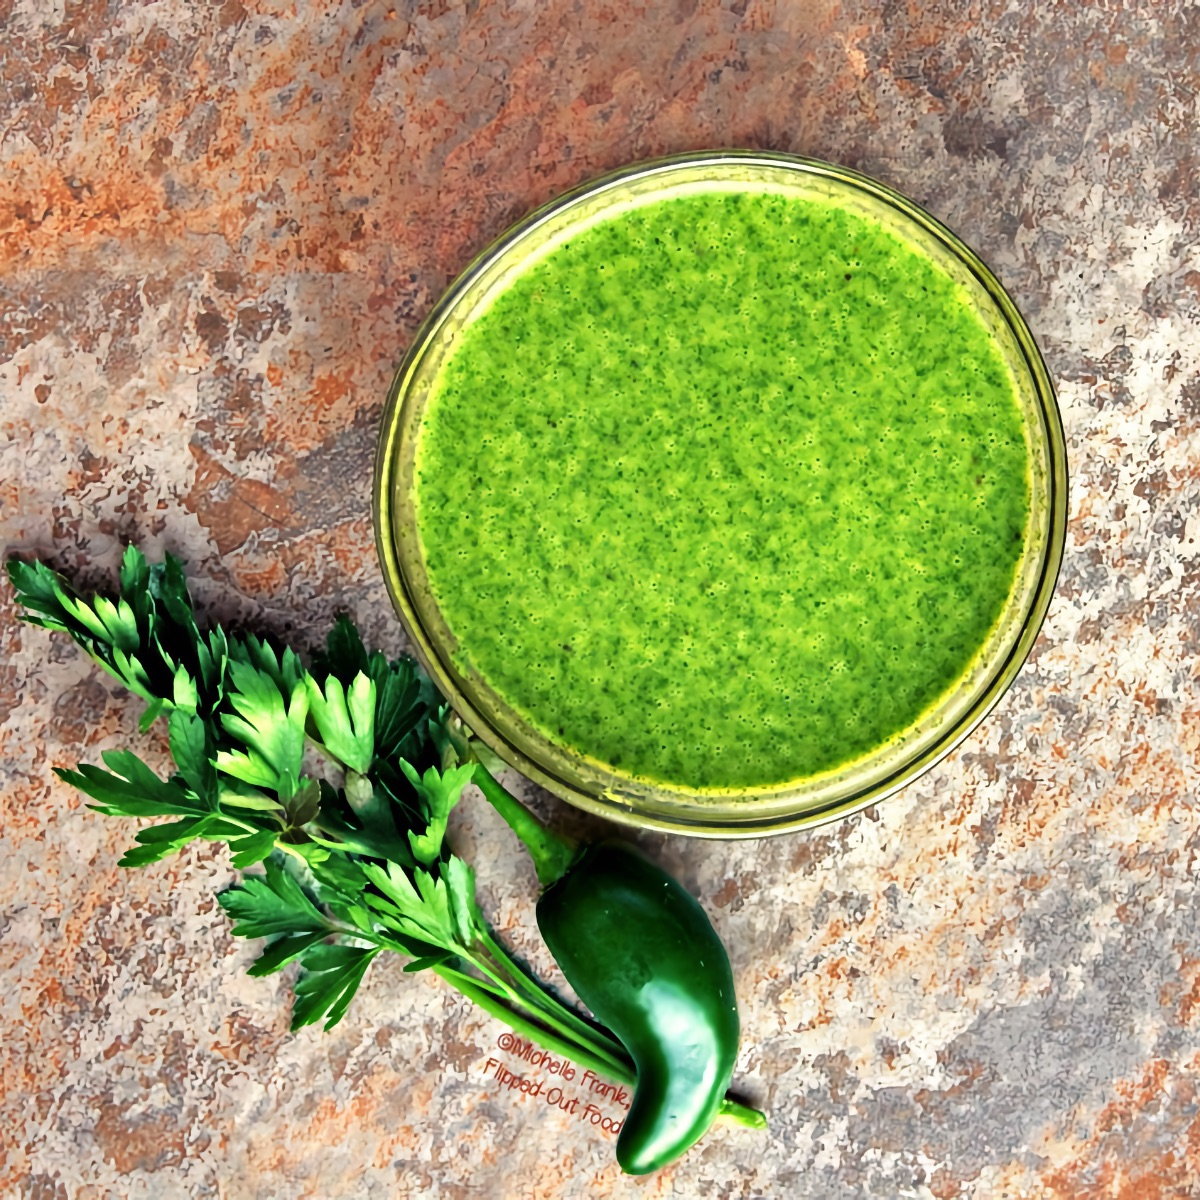 An overhead view of spicy chimichurri sauce, blended smooth and served in a ramekin. A jalapeño pepper and a sprig of parsley sit nearby.